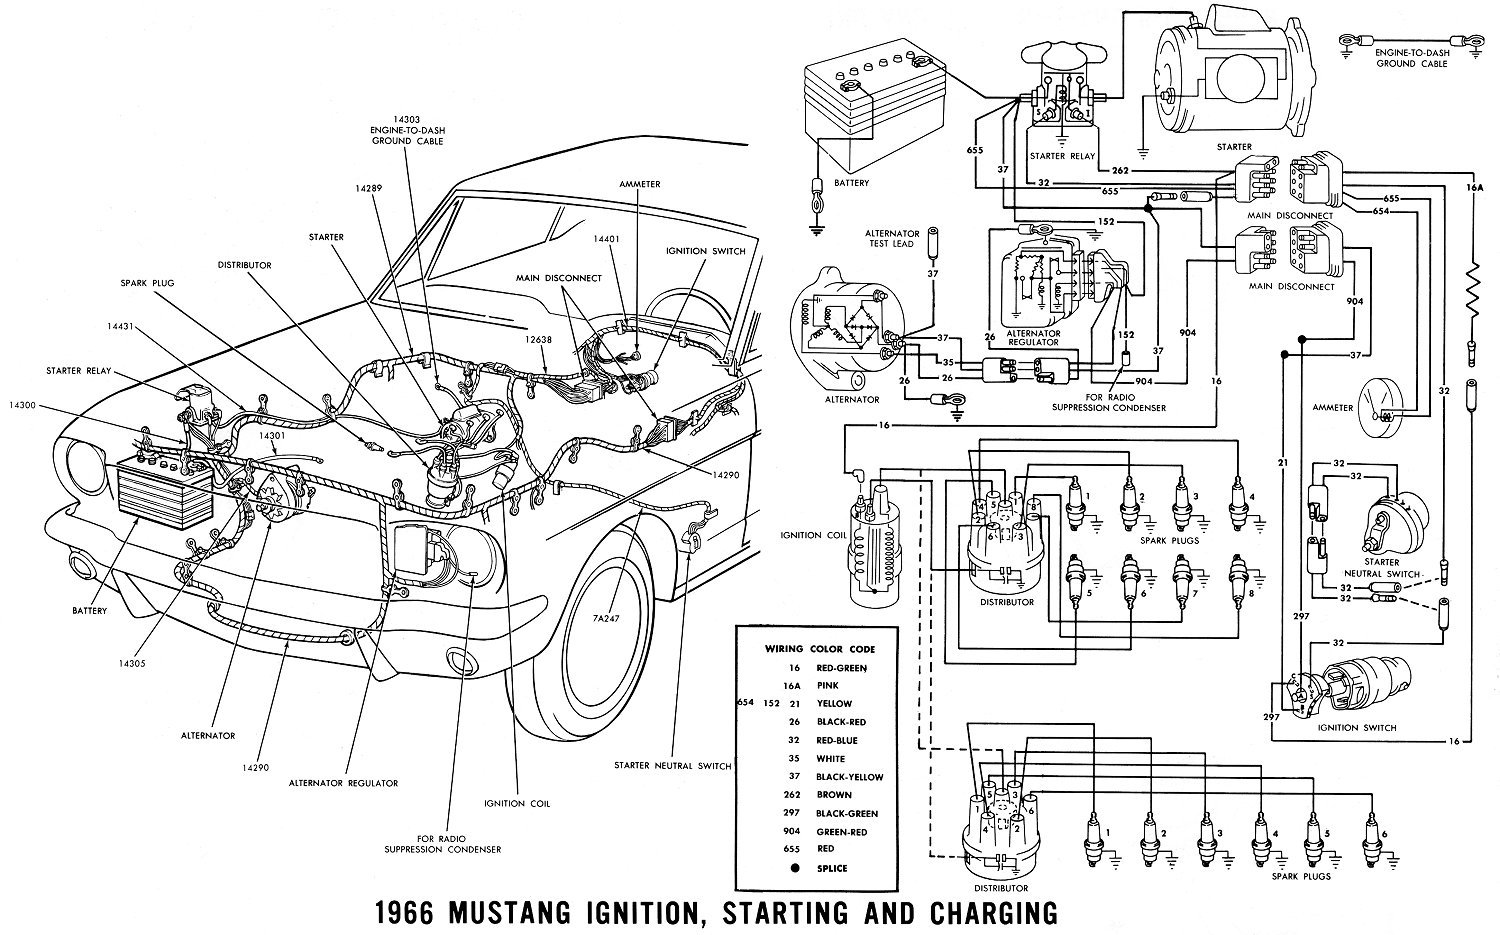 1966 Mustang Ignition Switch Diagram - What Pins are What? | Ford Mustang  ForumAll Ford Mustangs